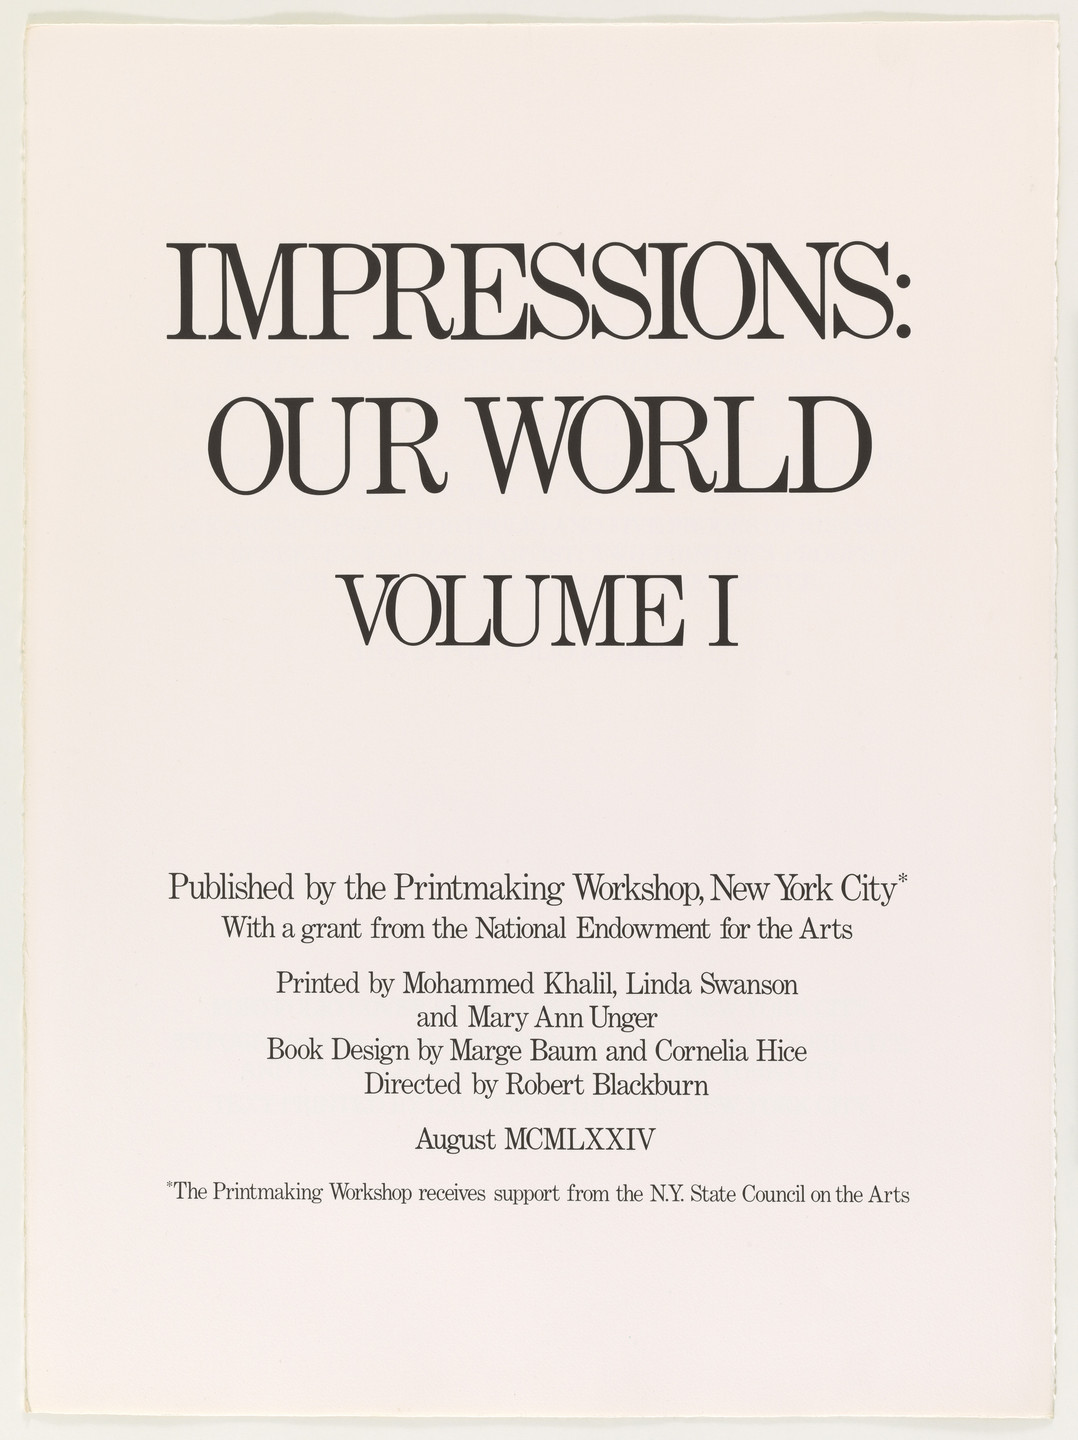 Various Artists, Emma Amos, Benny Andrews, Vivian Browne, Eldzier Cortor, Norman Lewis, Vincent Smith, John Wilson. Impressions: Our World, Volume I. 1973–74, published 1974